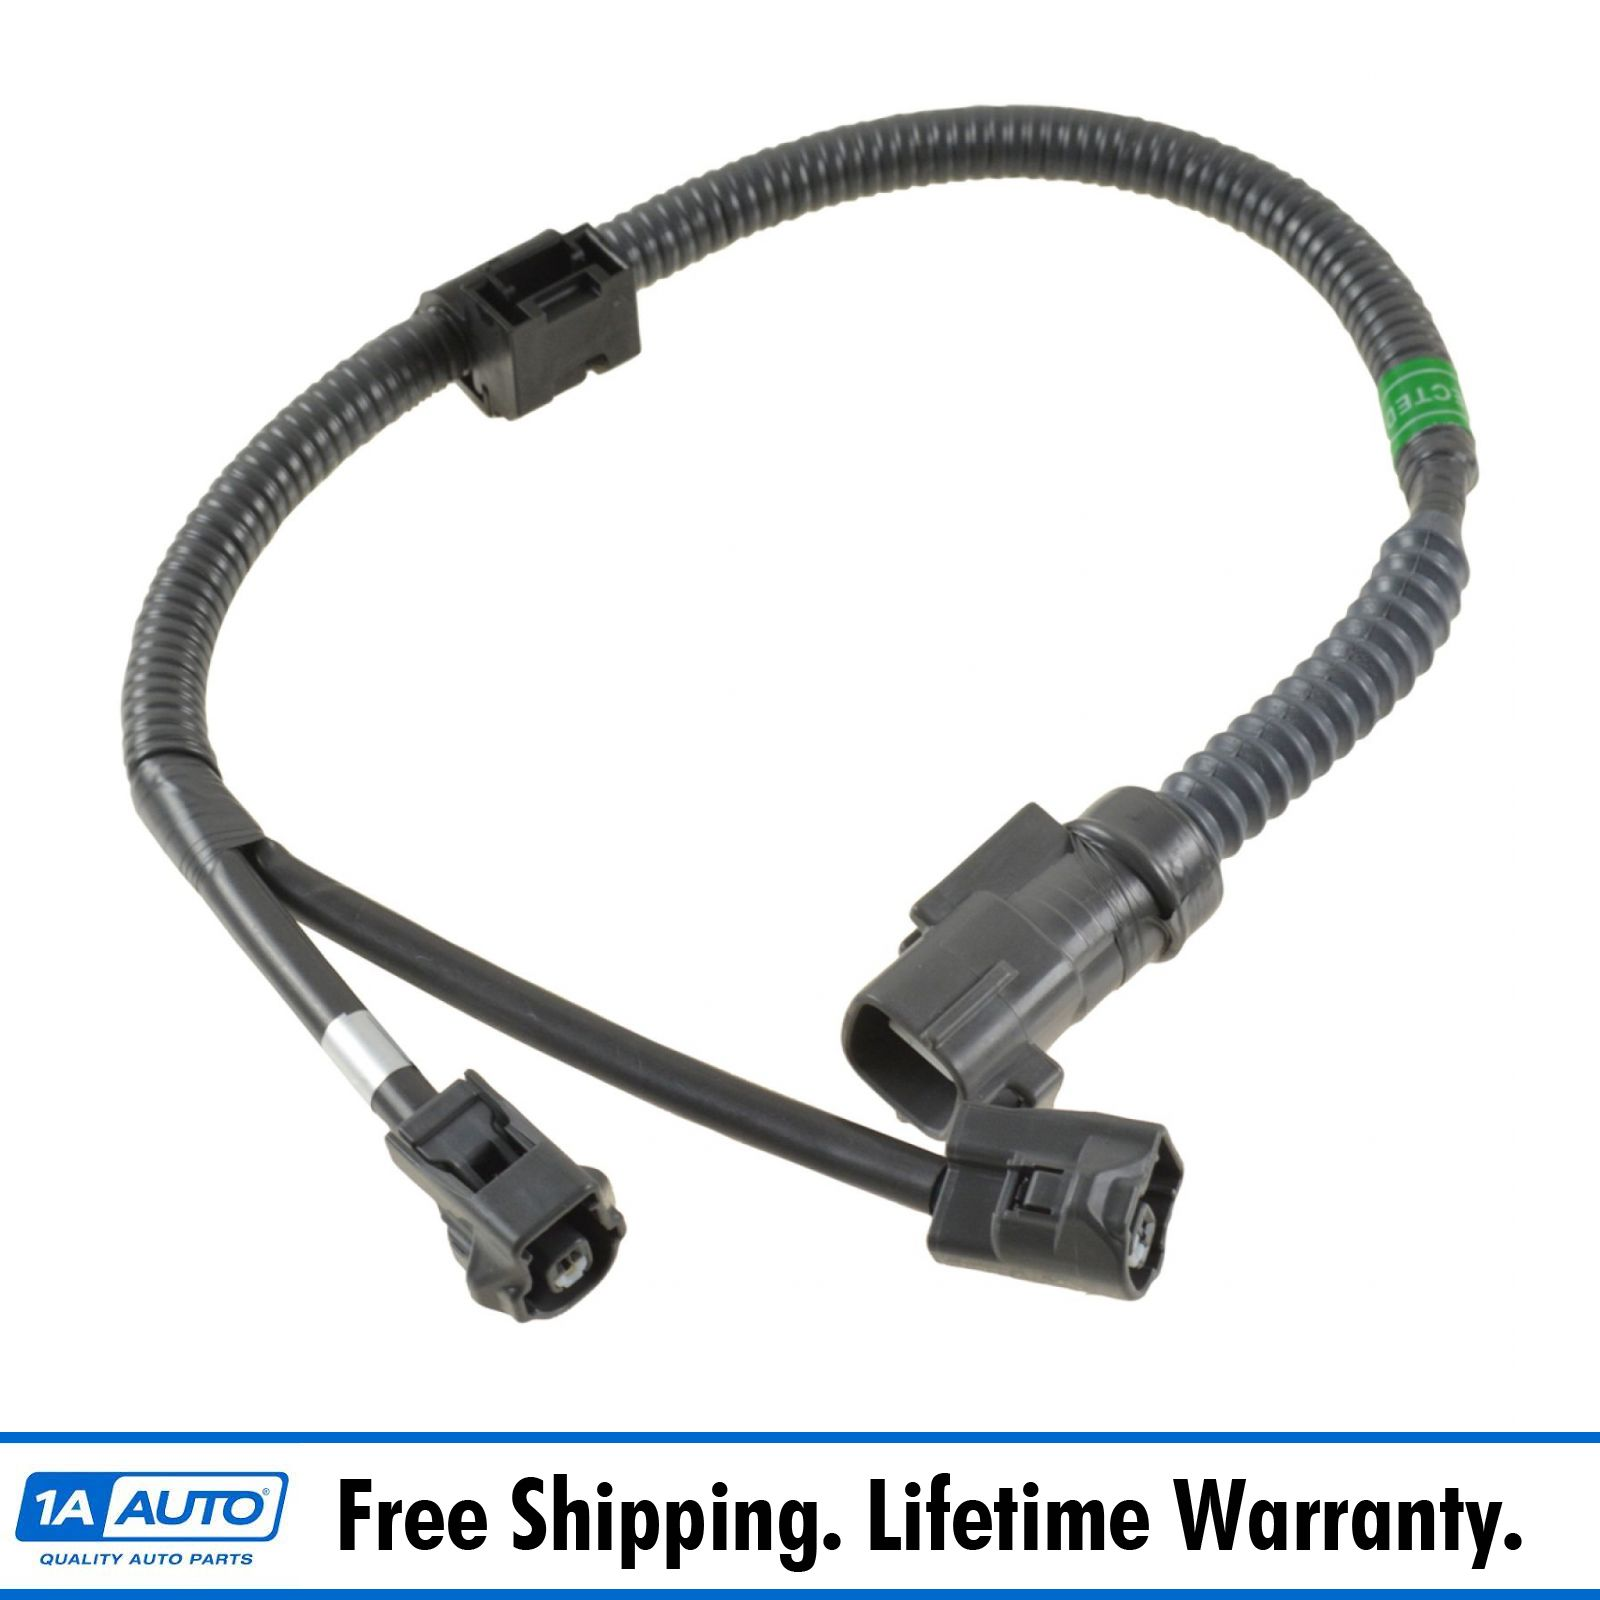 small resolution of oem engine knock sensor wiring harness pigtail plug for 3 0 toyota toyota exhaust parts image